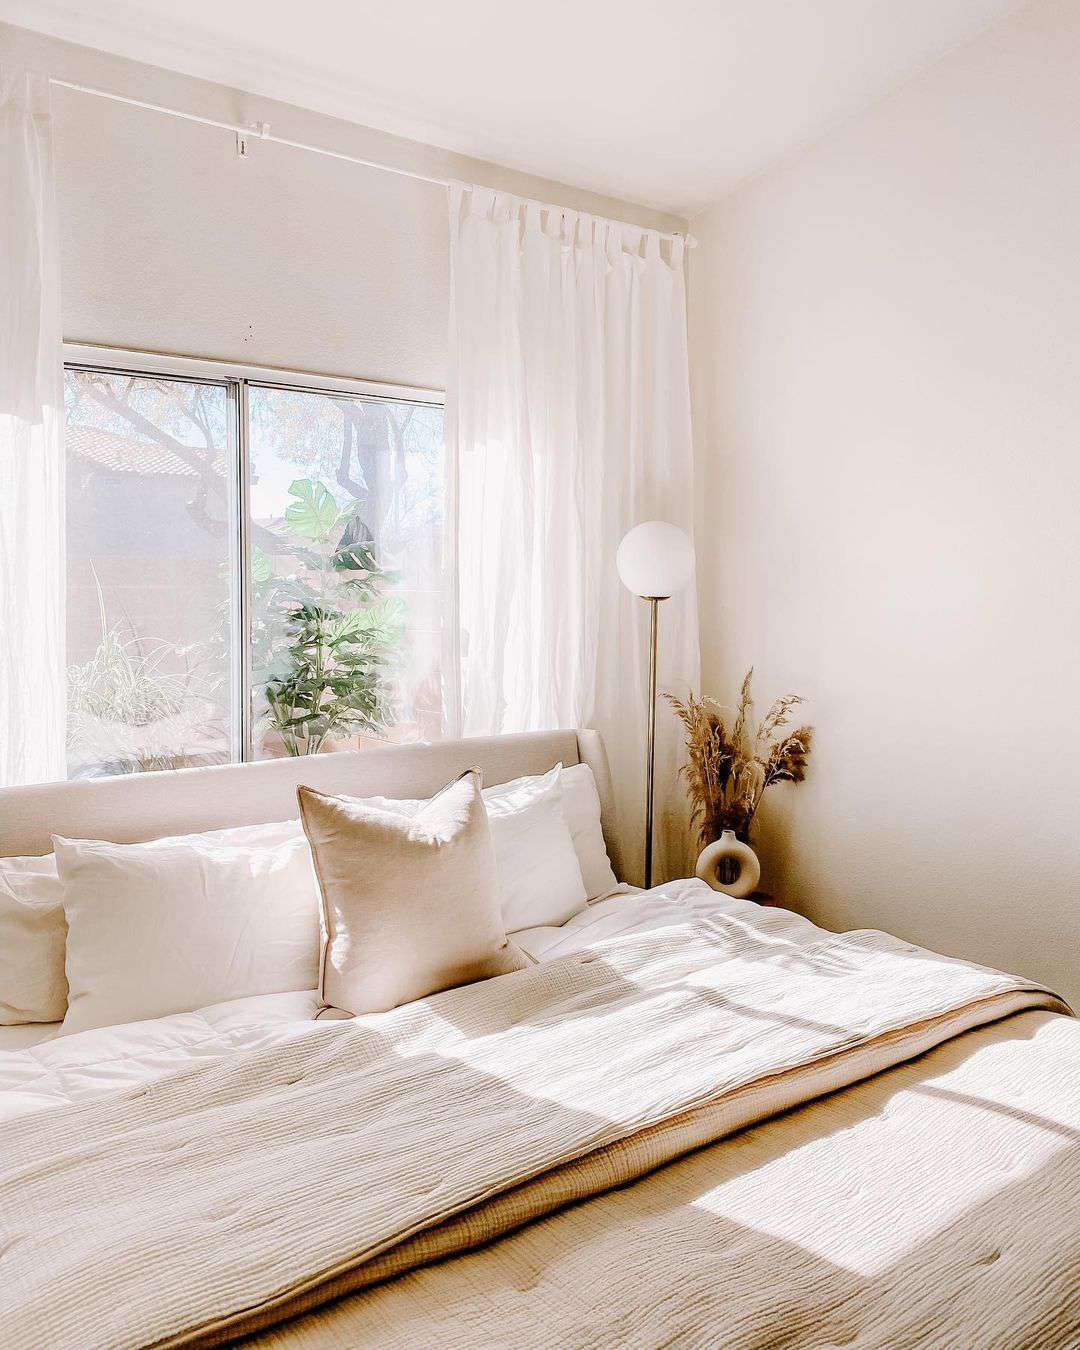 Beige bedroom with pampas grass and sun coming through windows.